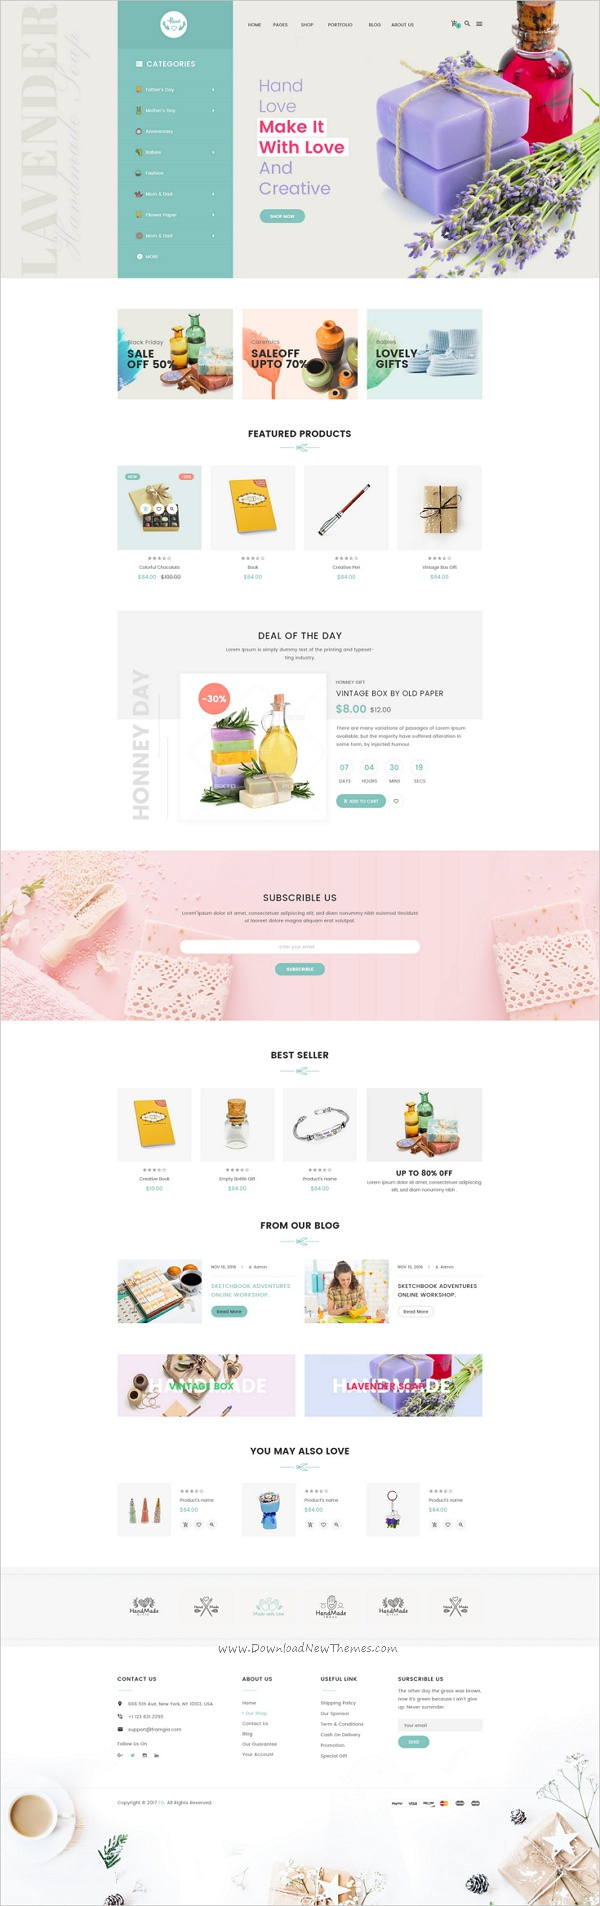 HandLove is a modern #Photoshop #eCommerce #theme suitable for handmade shop, gift shop, fashion shop websites download now➩ https://themeforest.net/item/handlove-ecommece-psd-template/19194085?ref=Datasata